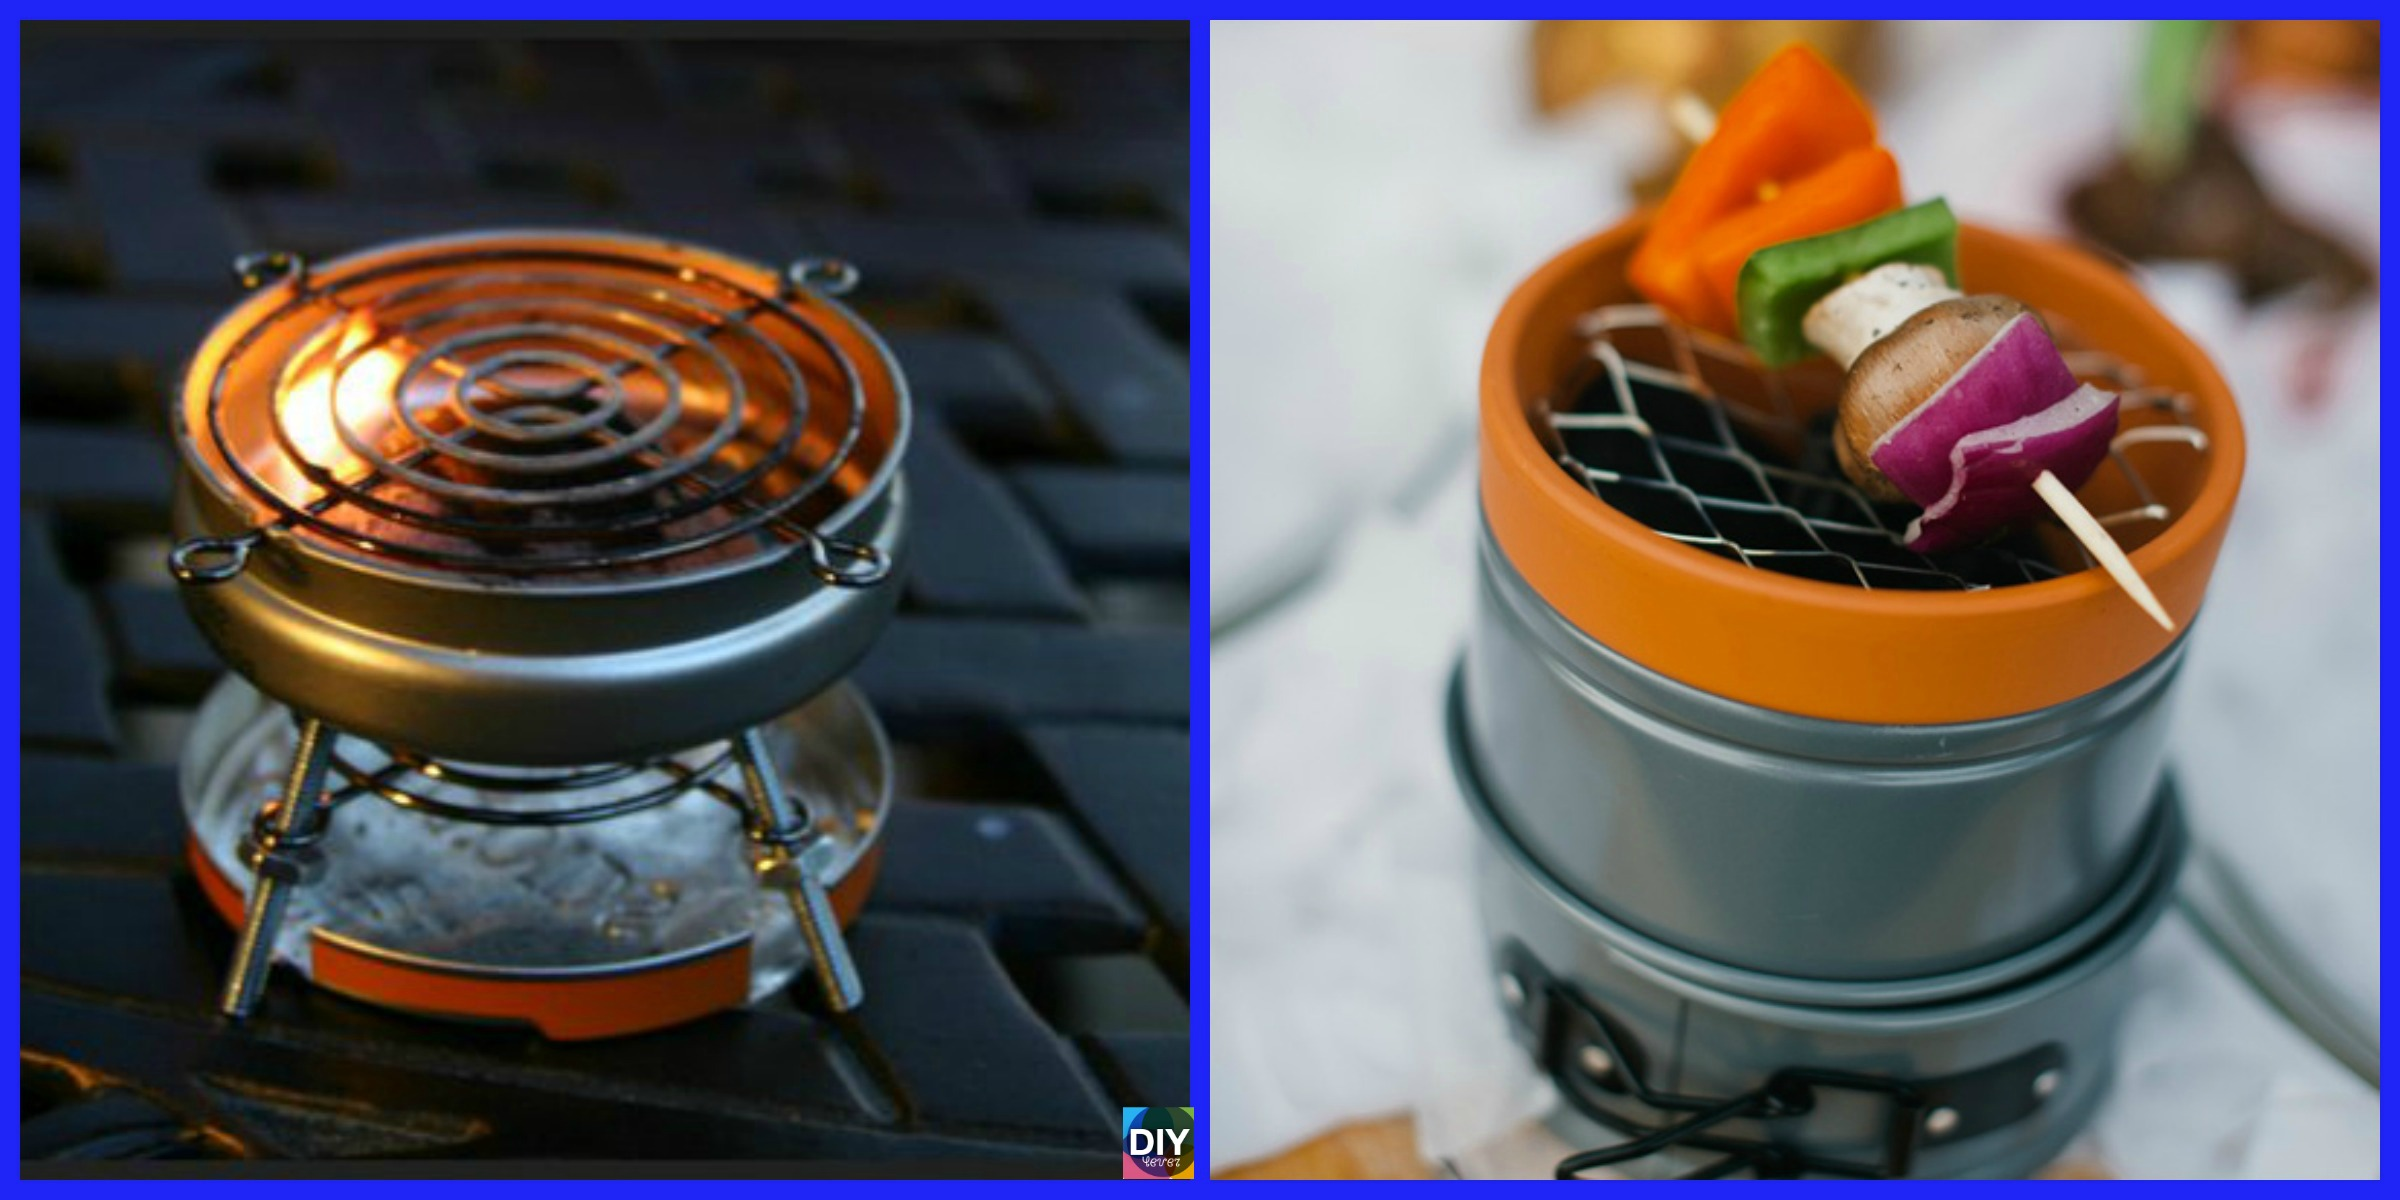 DIY Table Top BBQ Grill – Step By Step Tutorial